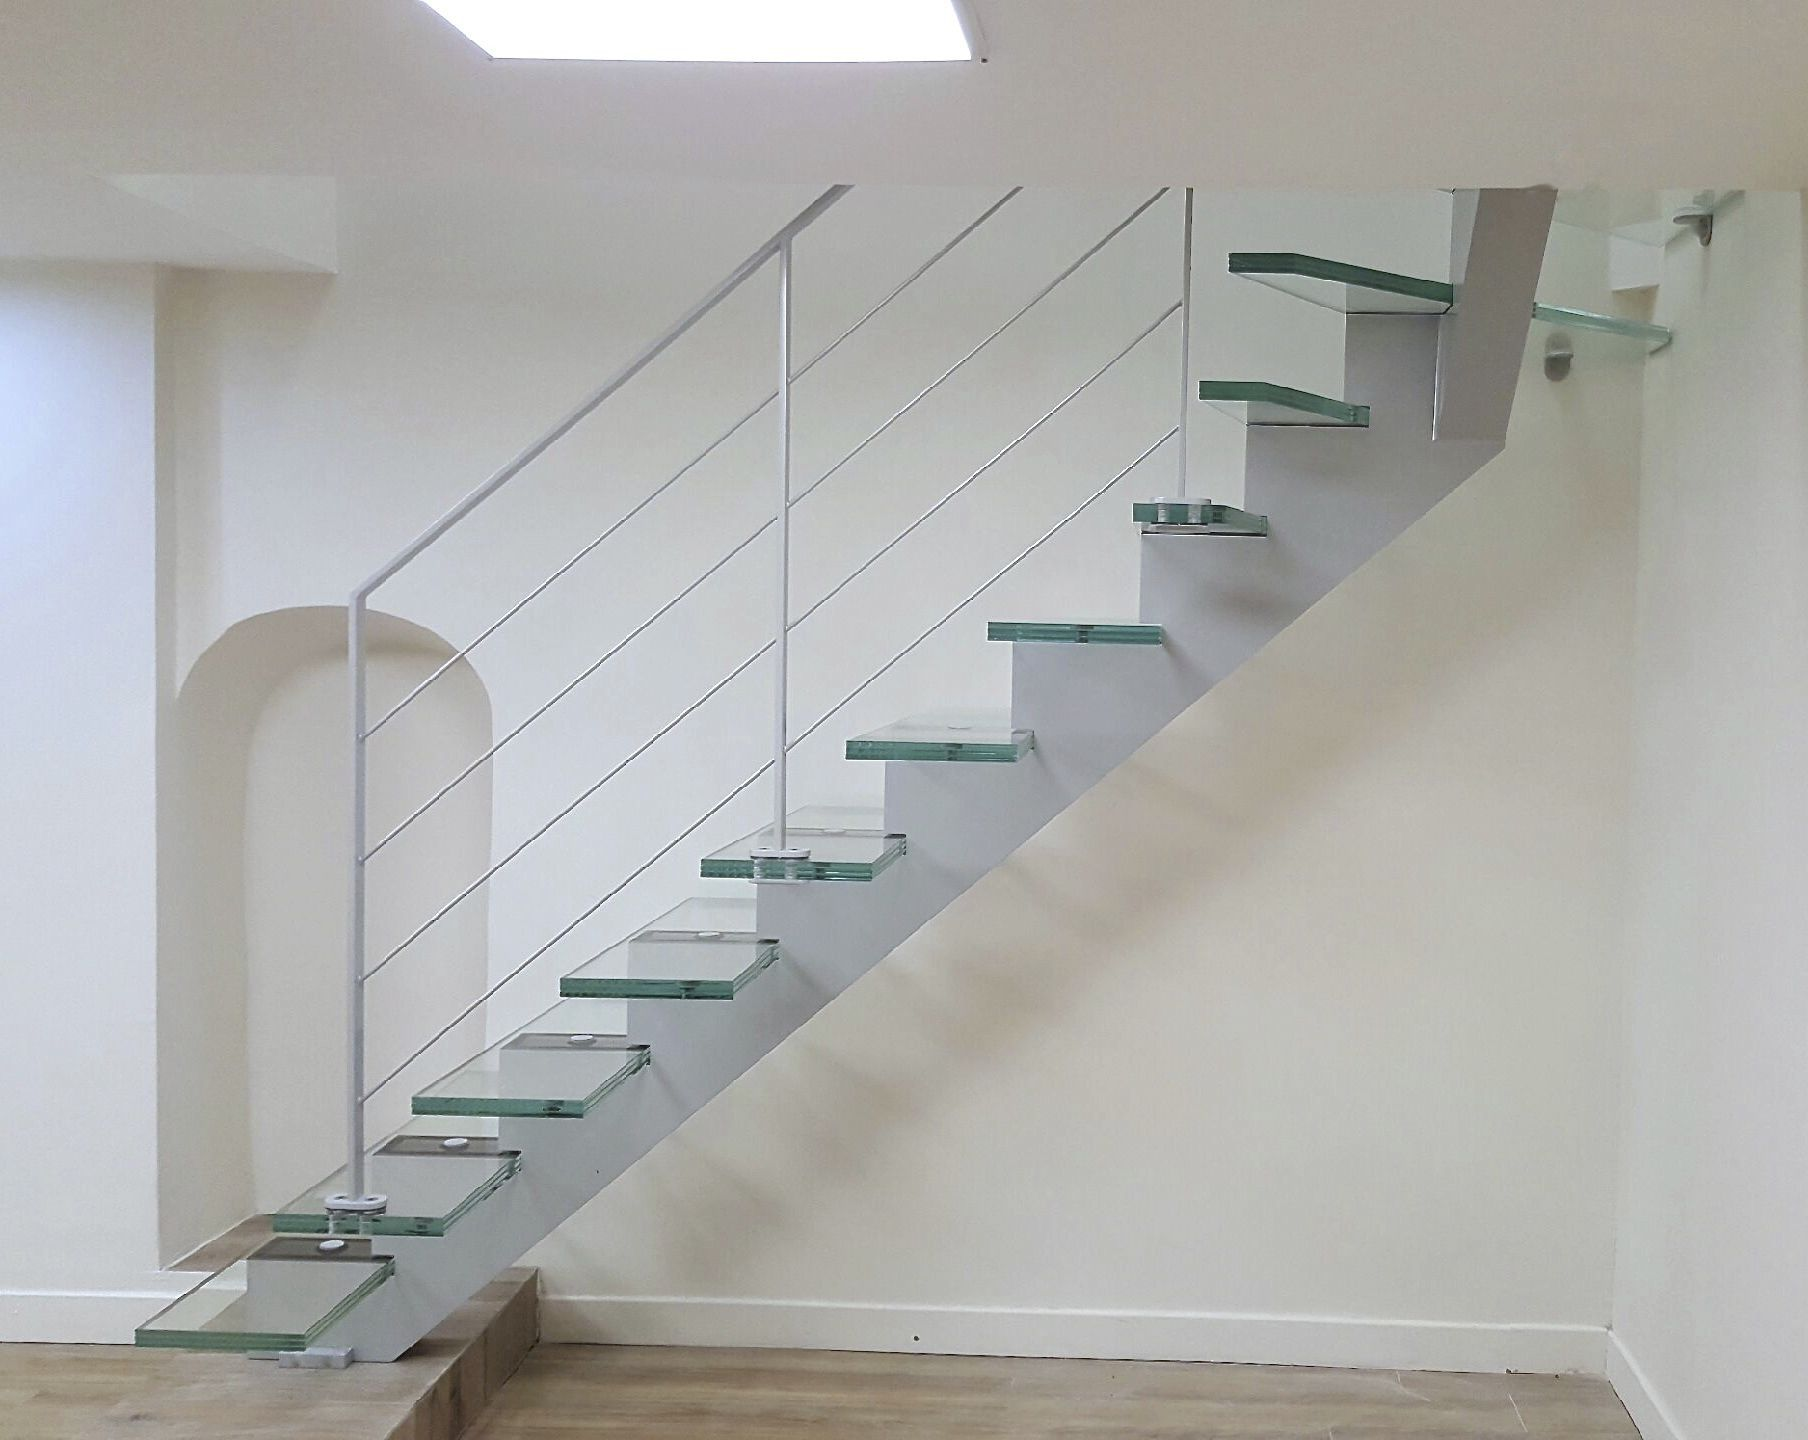 Escalier En Verre Quarter Turn Staircase Steel Frame Glass Steps Without